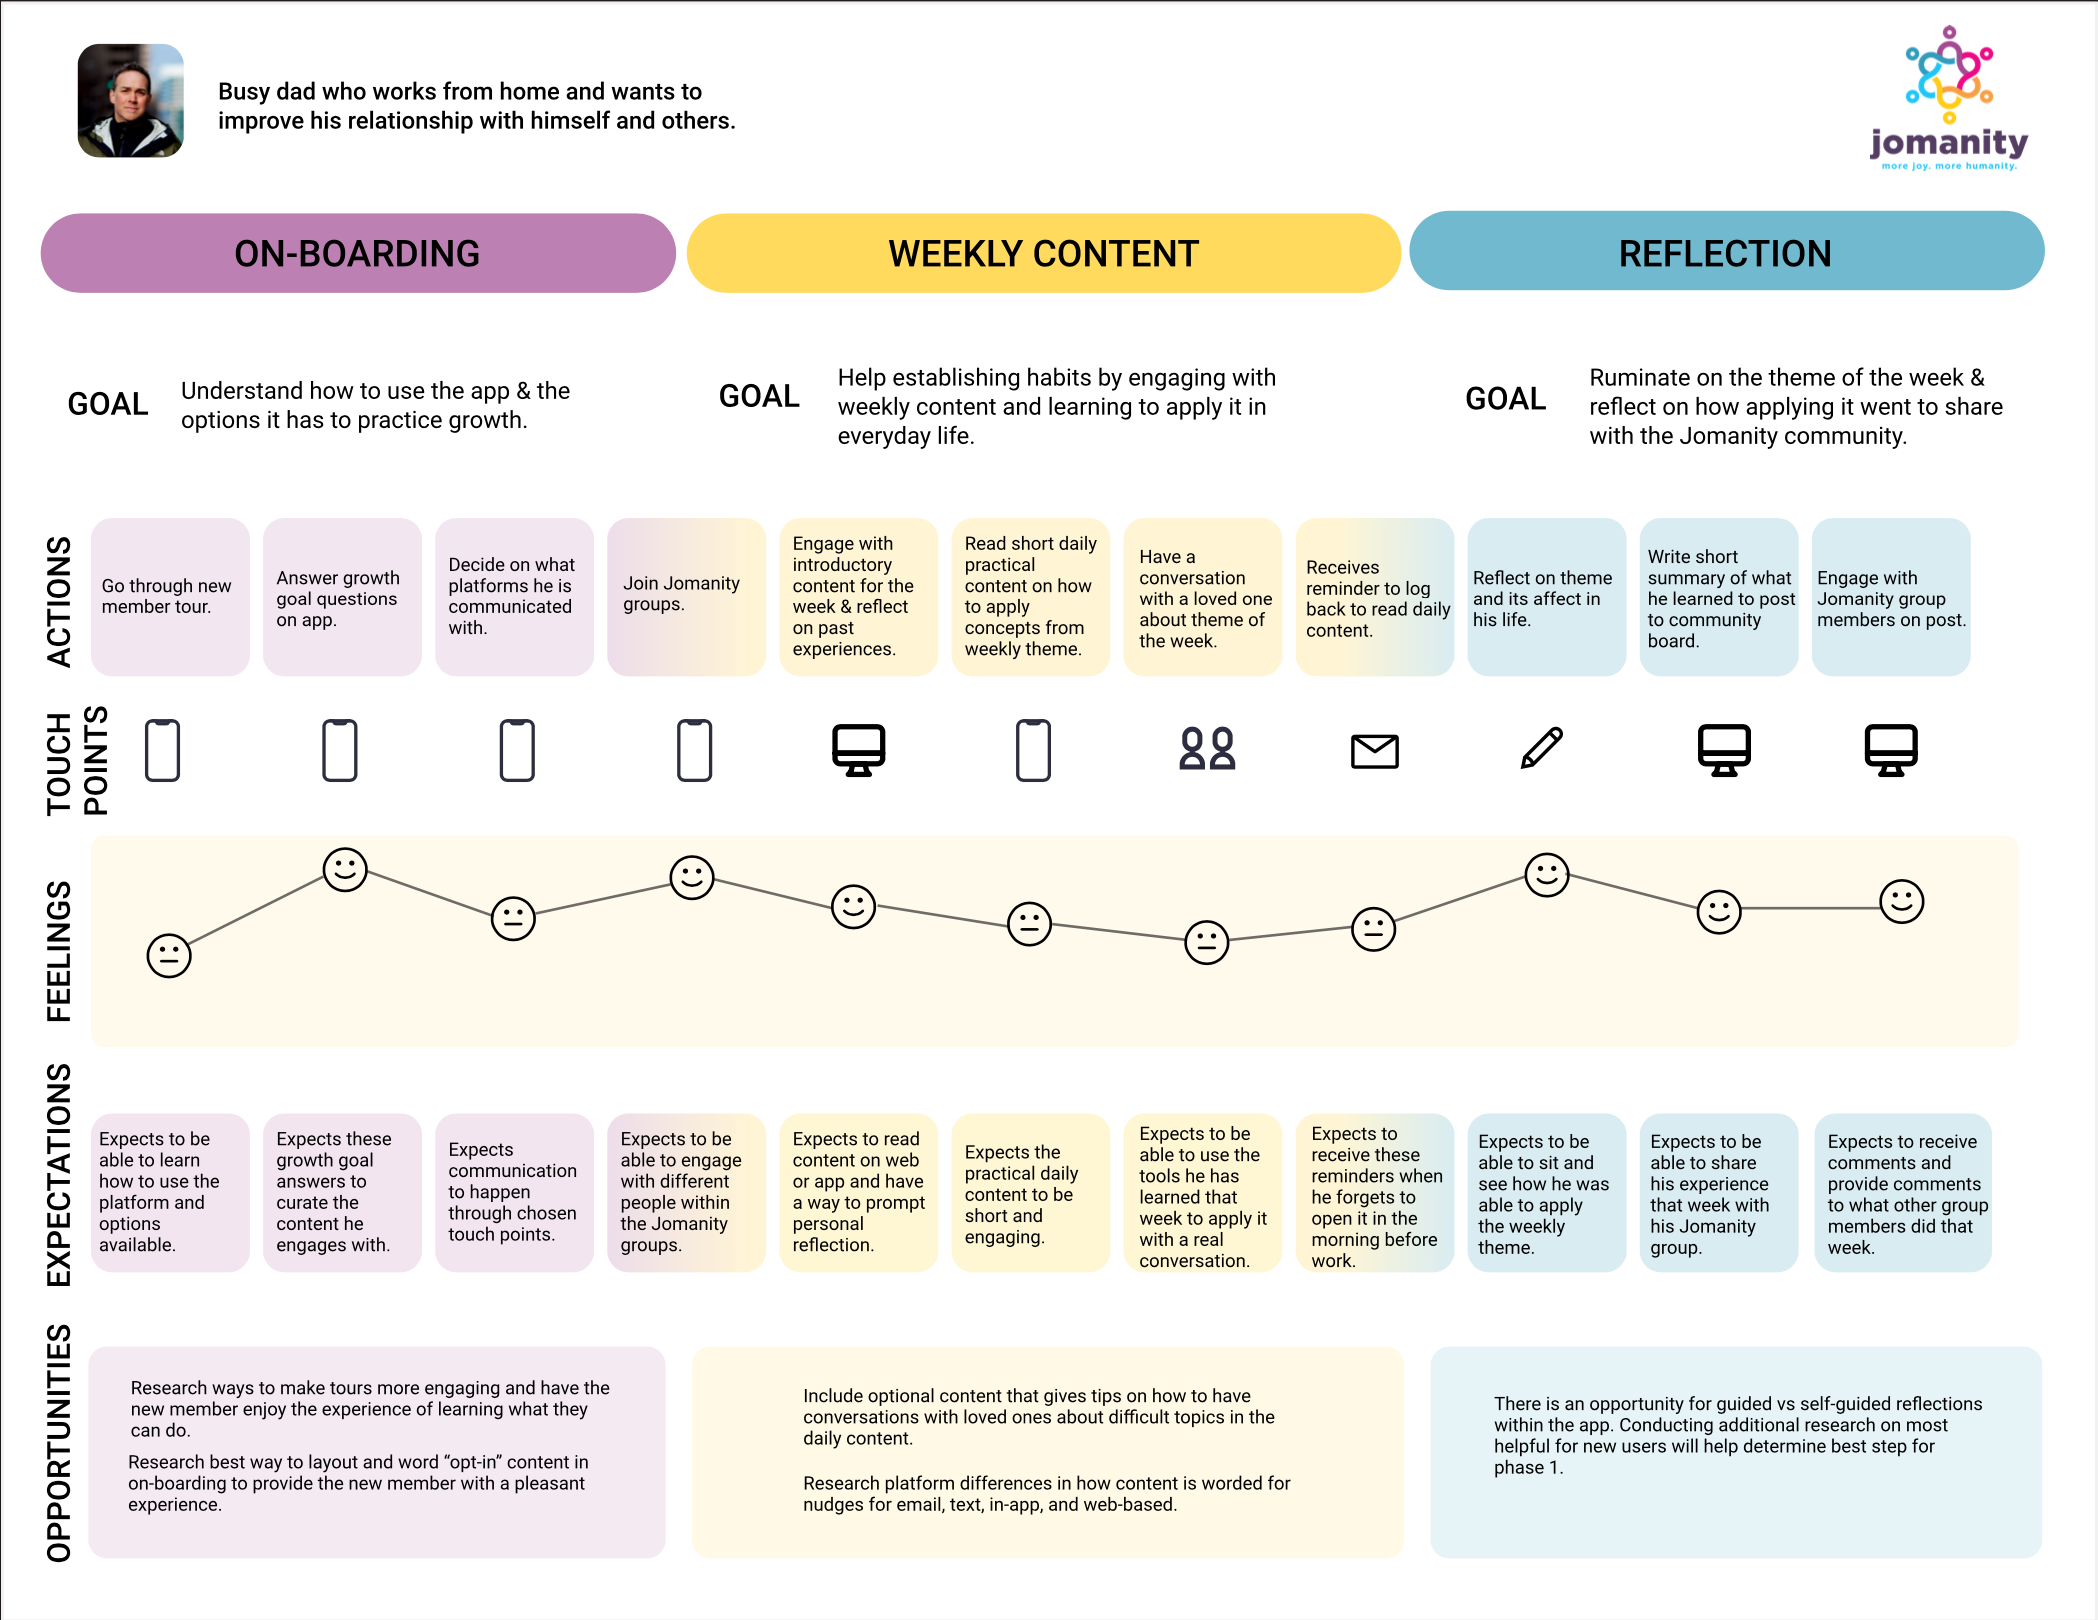 Visual of a journey map of a user's first week onboarding and using Jomanity.